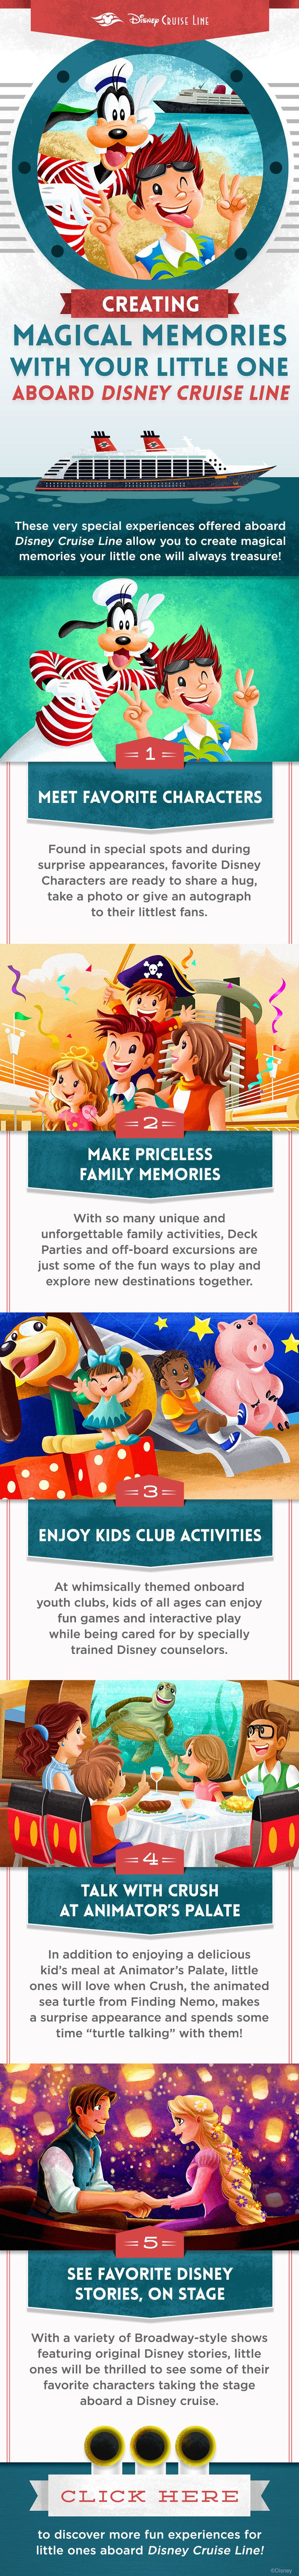 These very special experiences offered onboard Disney Cruise Line allow you to create magical memories your little ones will remember. Click to learn more about cruise fun for little ones!